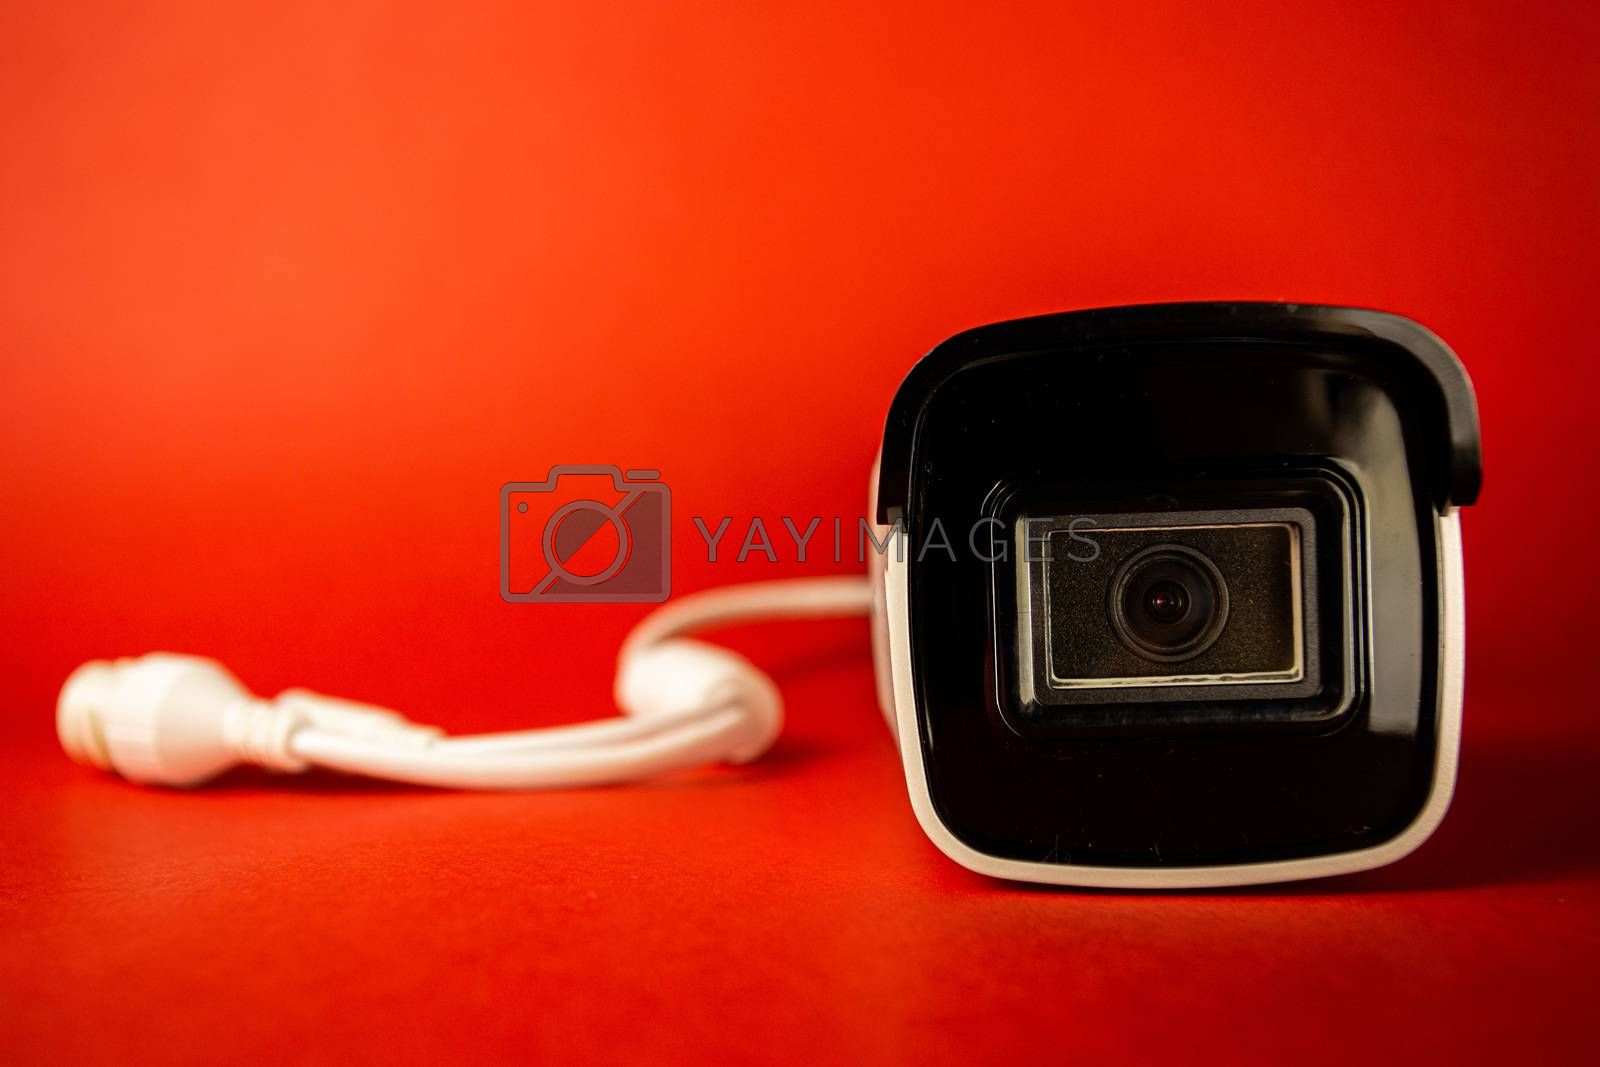 Security Camera for Home Security, videcam, smart home technology, monitoring system and it&c